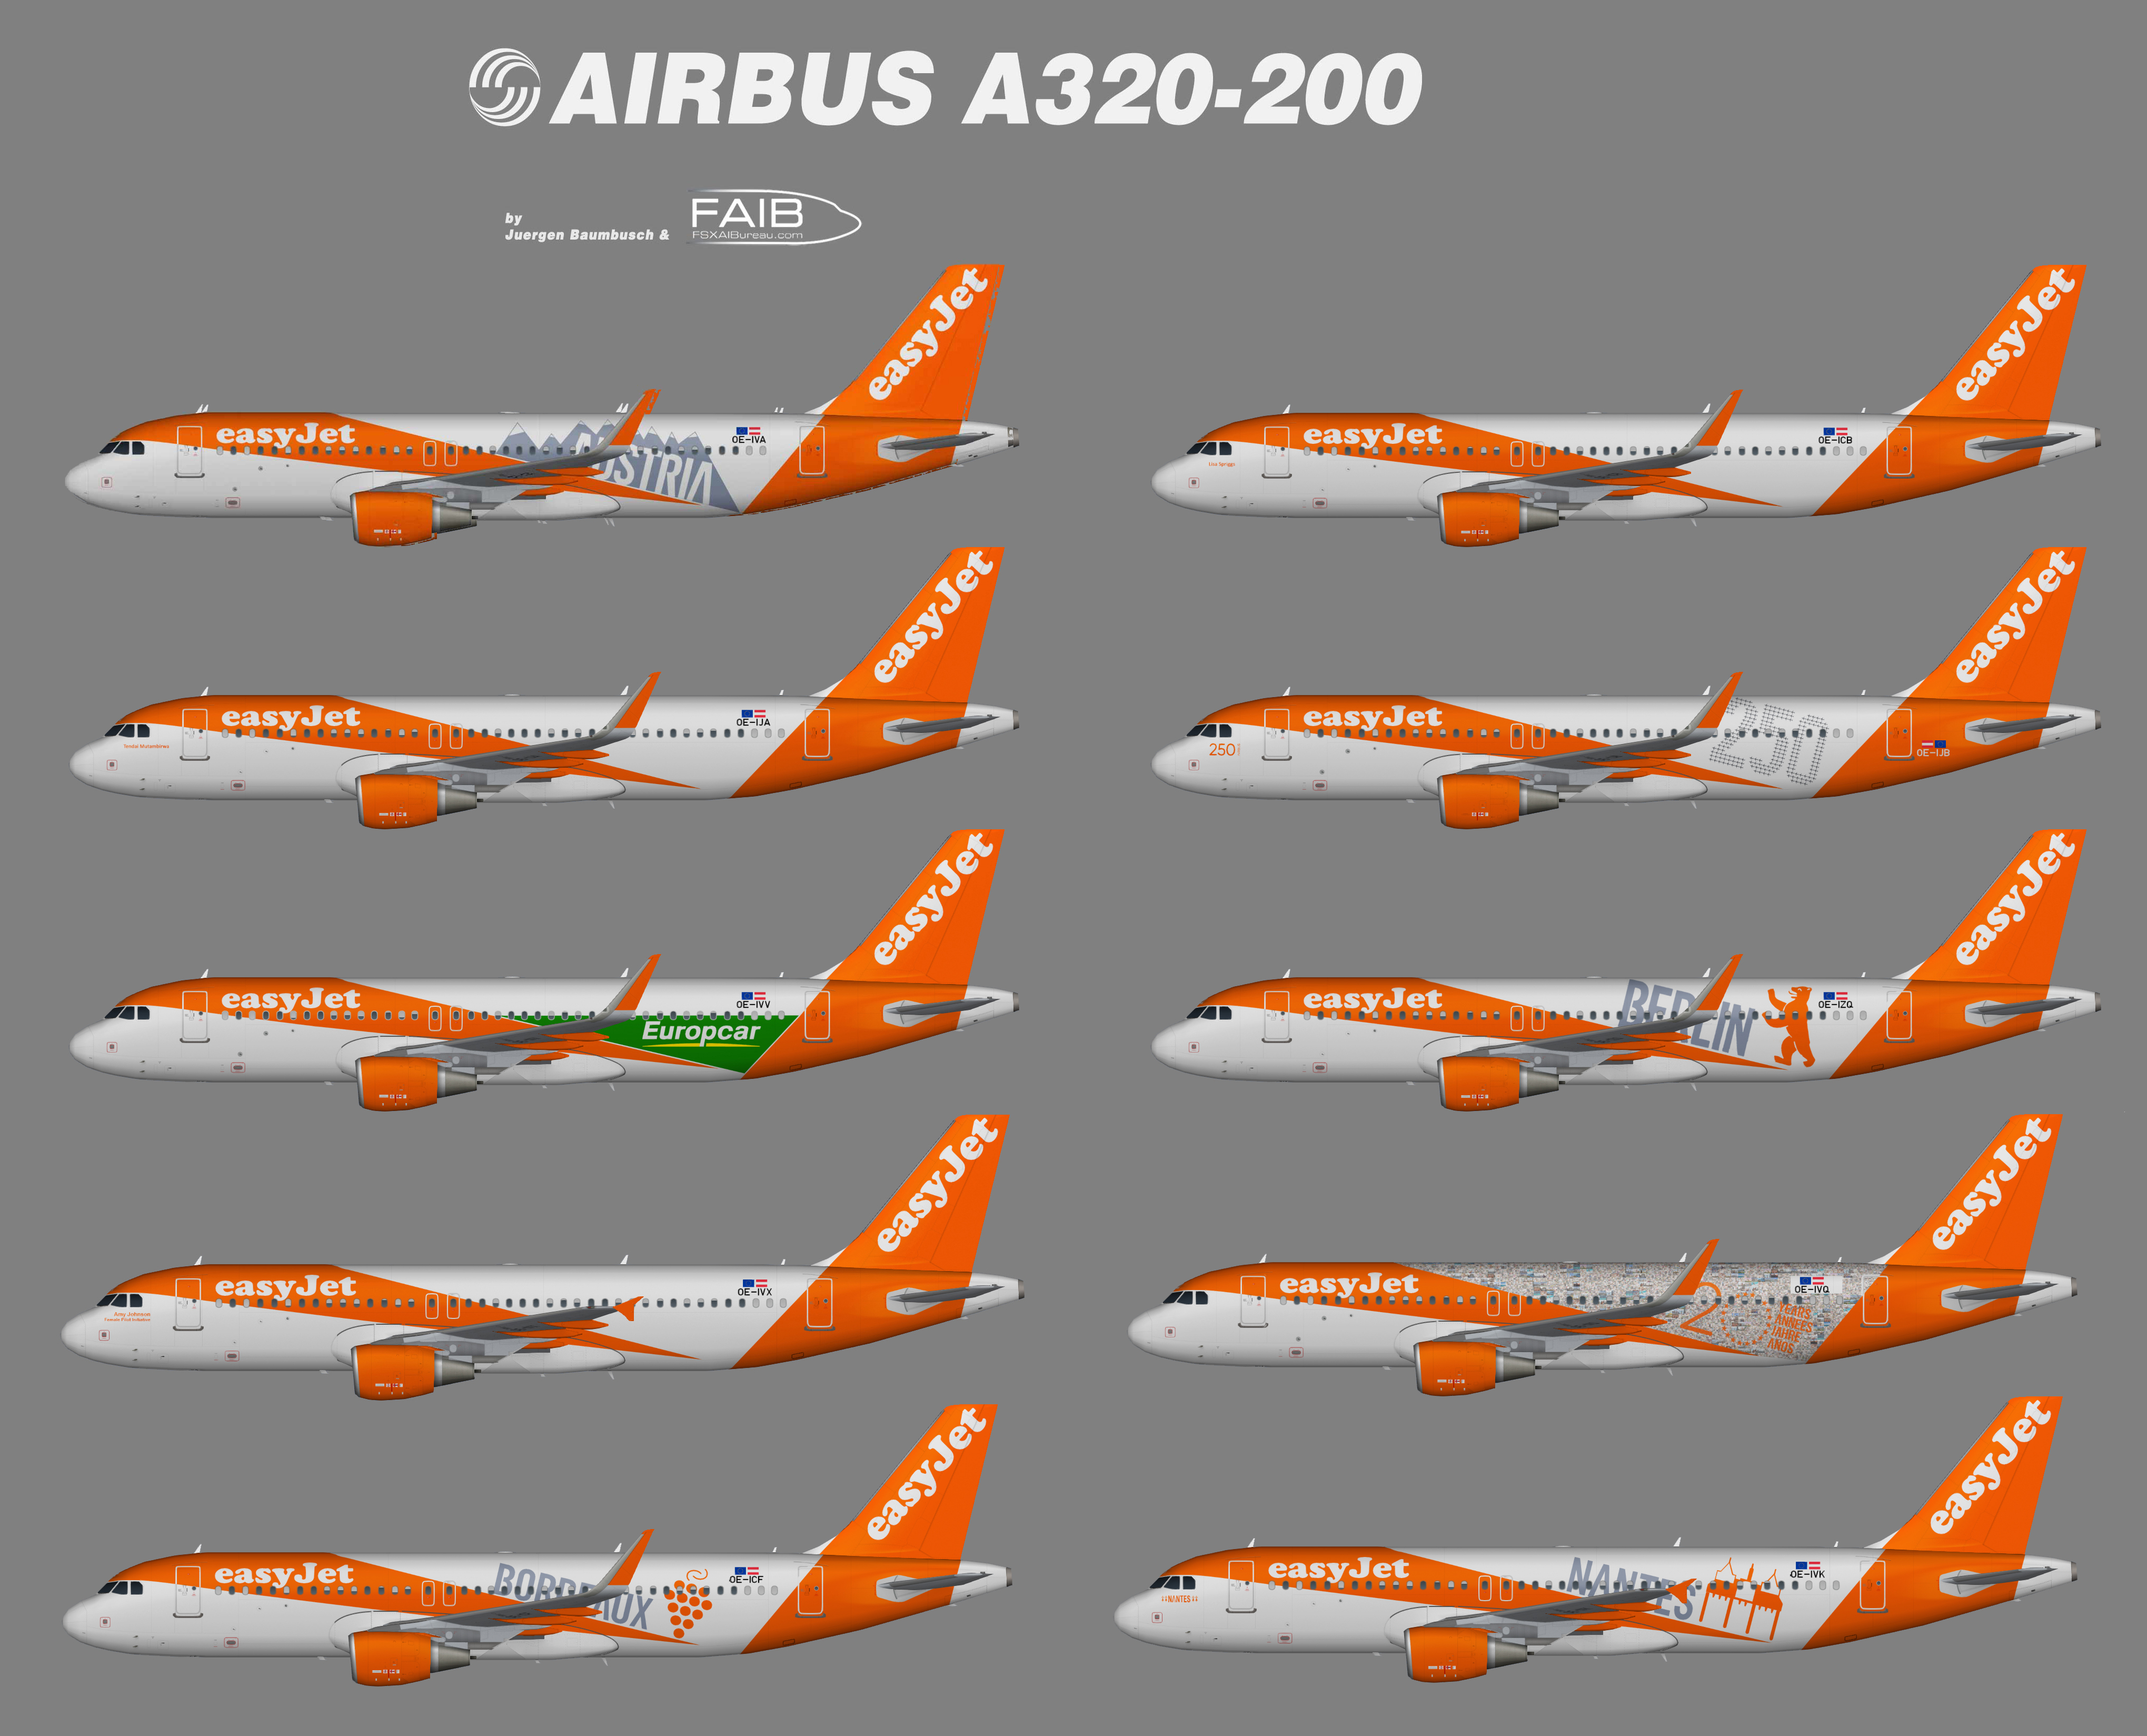 Easyjet Europe Specials Airbus A320-200